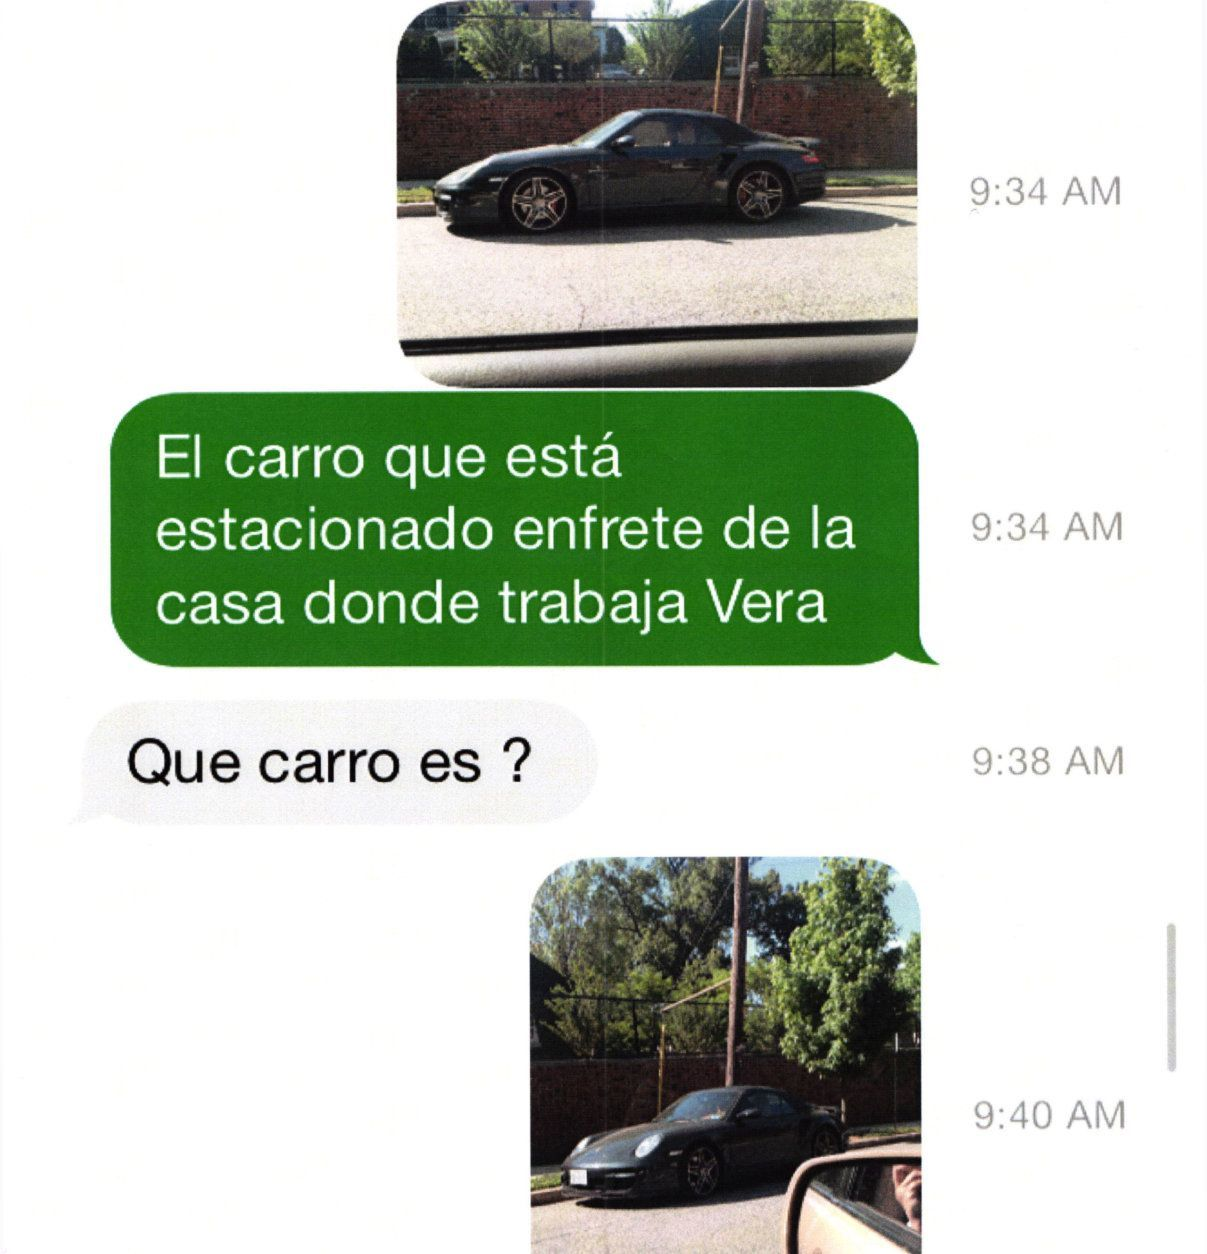 Vera Figueroa's stepdaughter Claudia Alfaro went with her dad to Woodland Drive on Thursday May 14, 2015 to try to find Vera. While her dad, Bernardo Alfaro, was knocking on the front door, she noticed a flash sports car on the street. The 2008 Porsche 911 Turbo was Amy's. What happened to that Porsche ended up being a major part of the crime. (Courtesy U.S. Attorney's Office for D.C.)